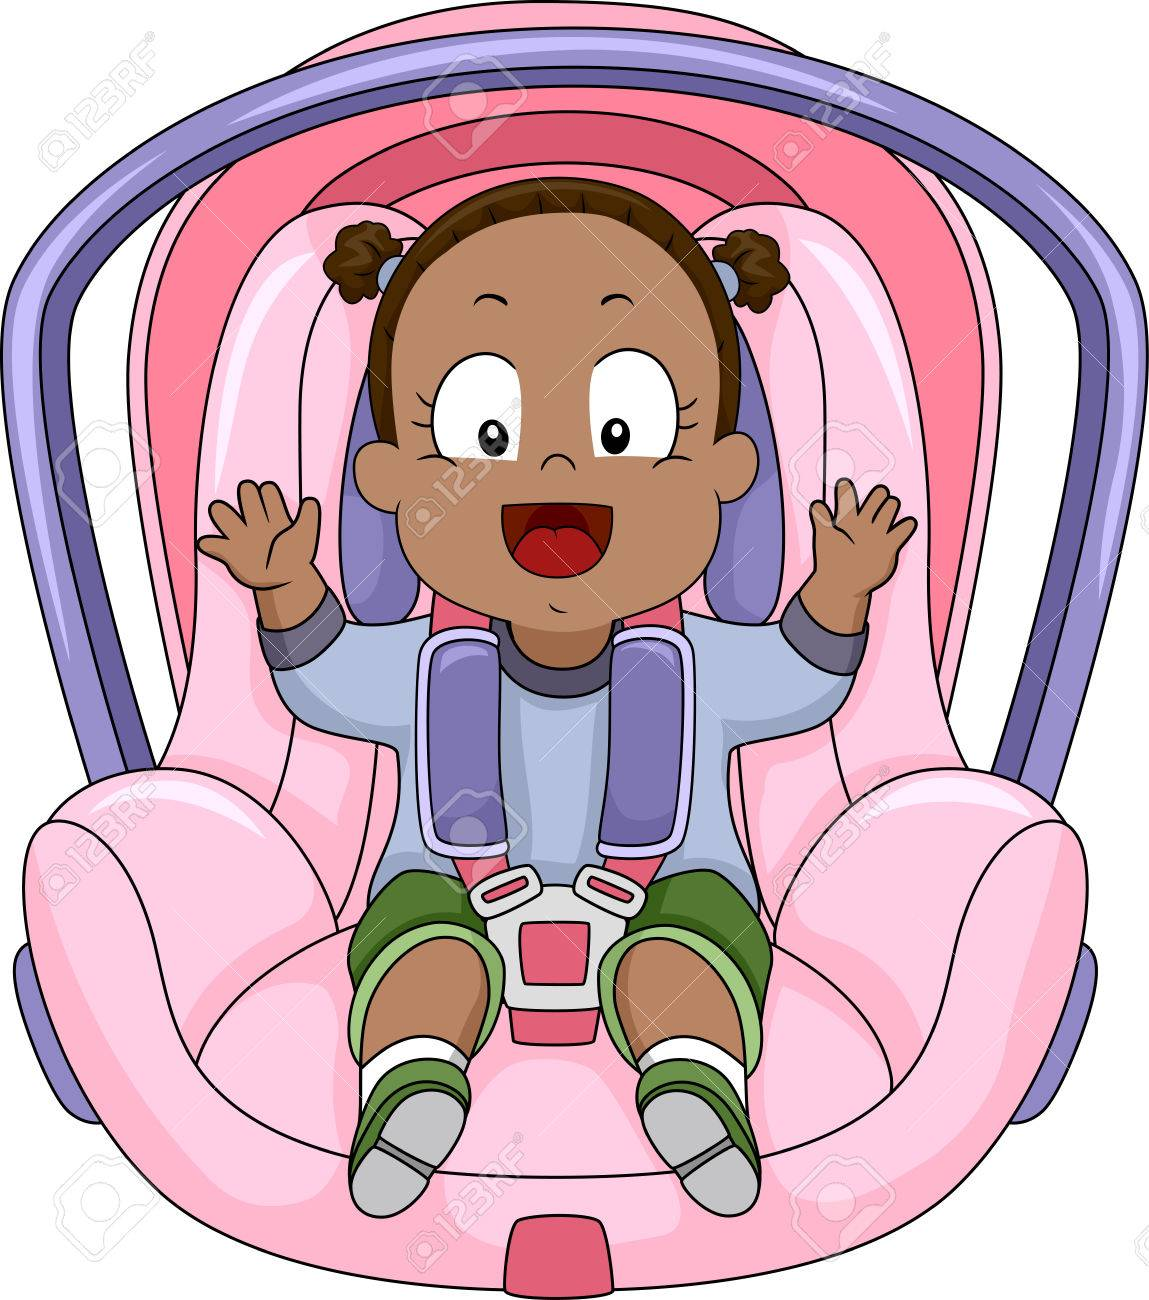 Illustration Of A Smiling Baby Girl Strapped To Car Seat Stock